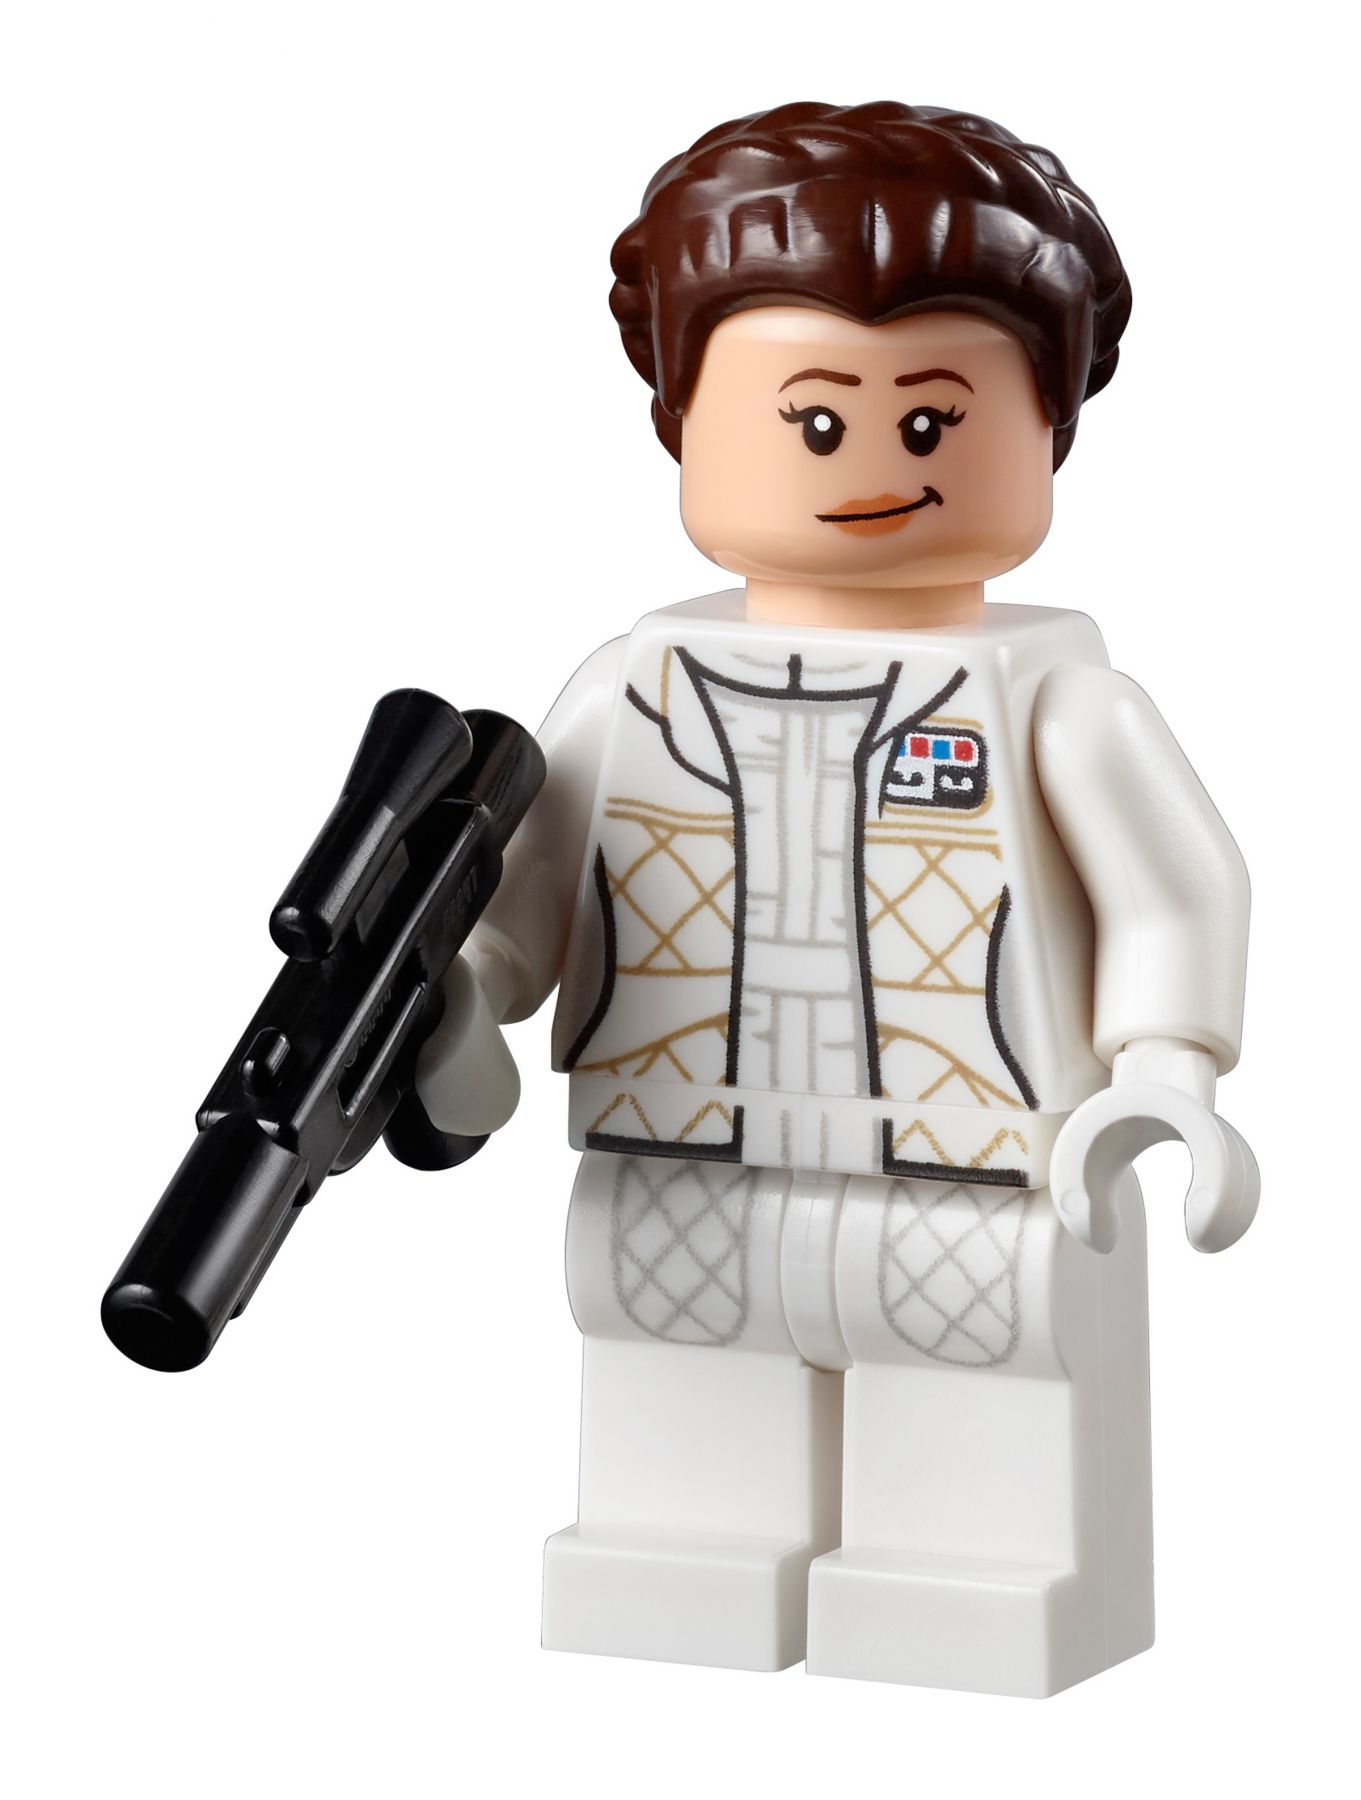 LEGO Star Wars 75222 Verrat in Cloud City™ LEGO_75222_alt15.jpg